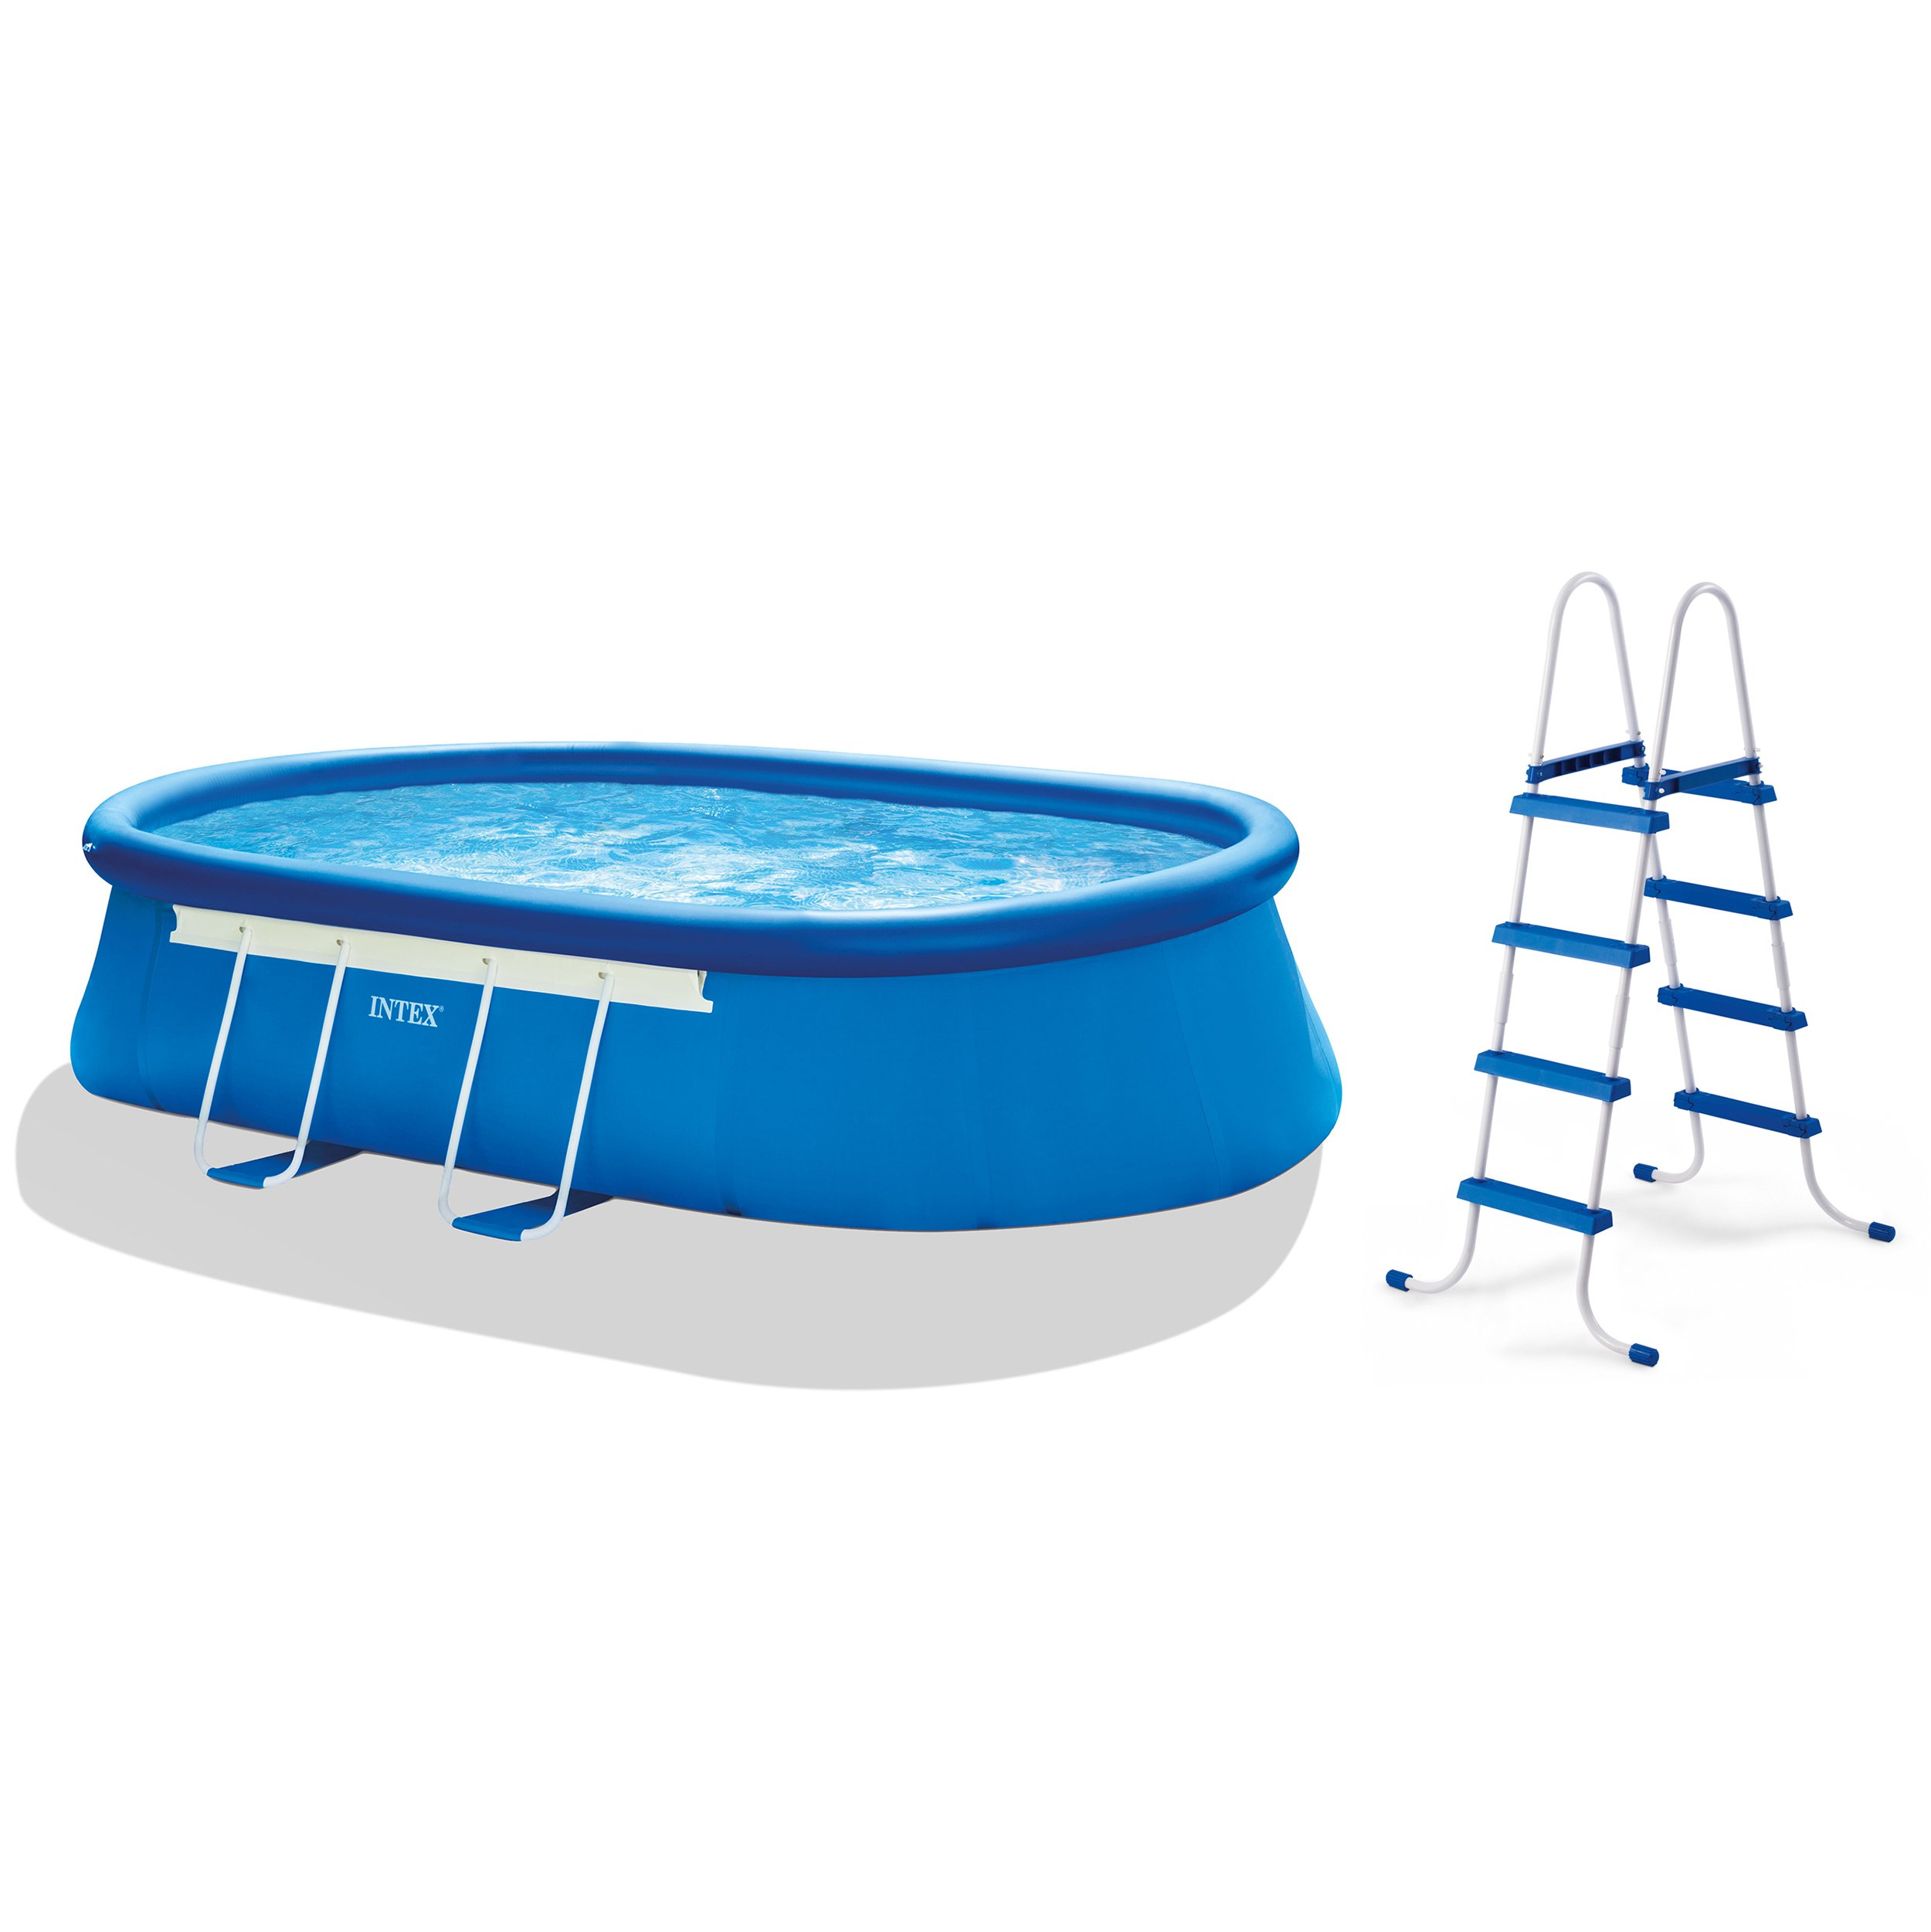 Cheap Oval Intex Pool, find Oval Intex Pool deals on line at Alibaba.com